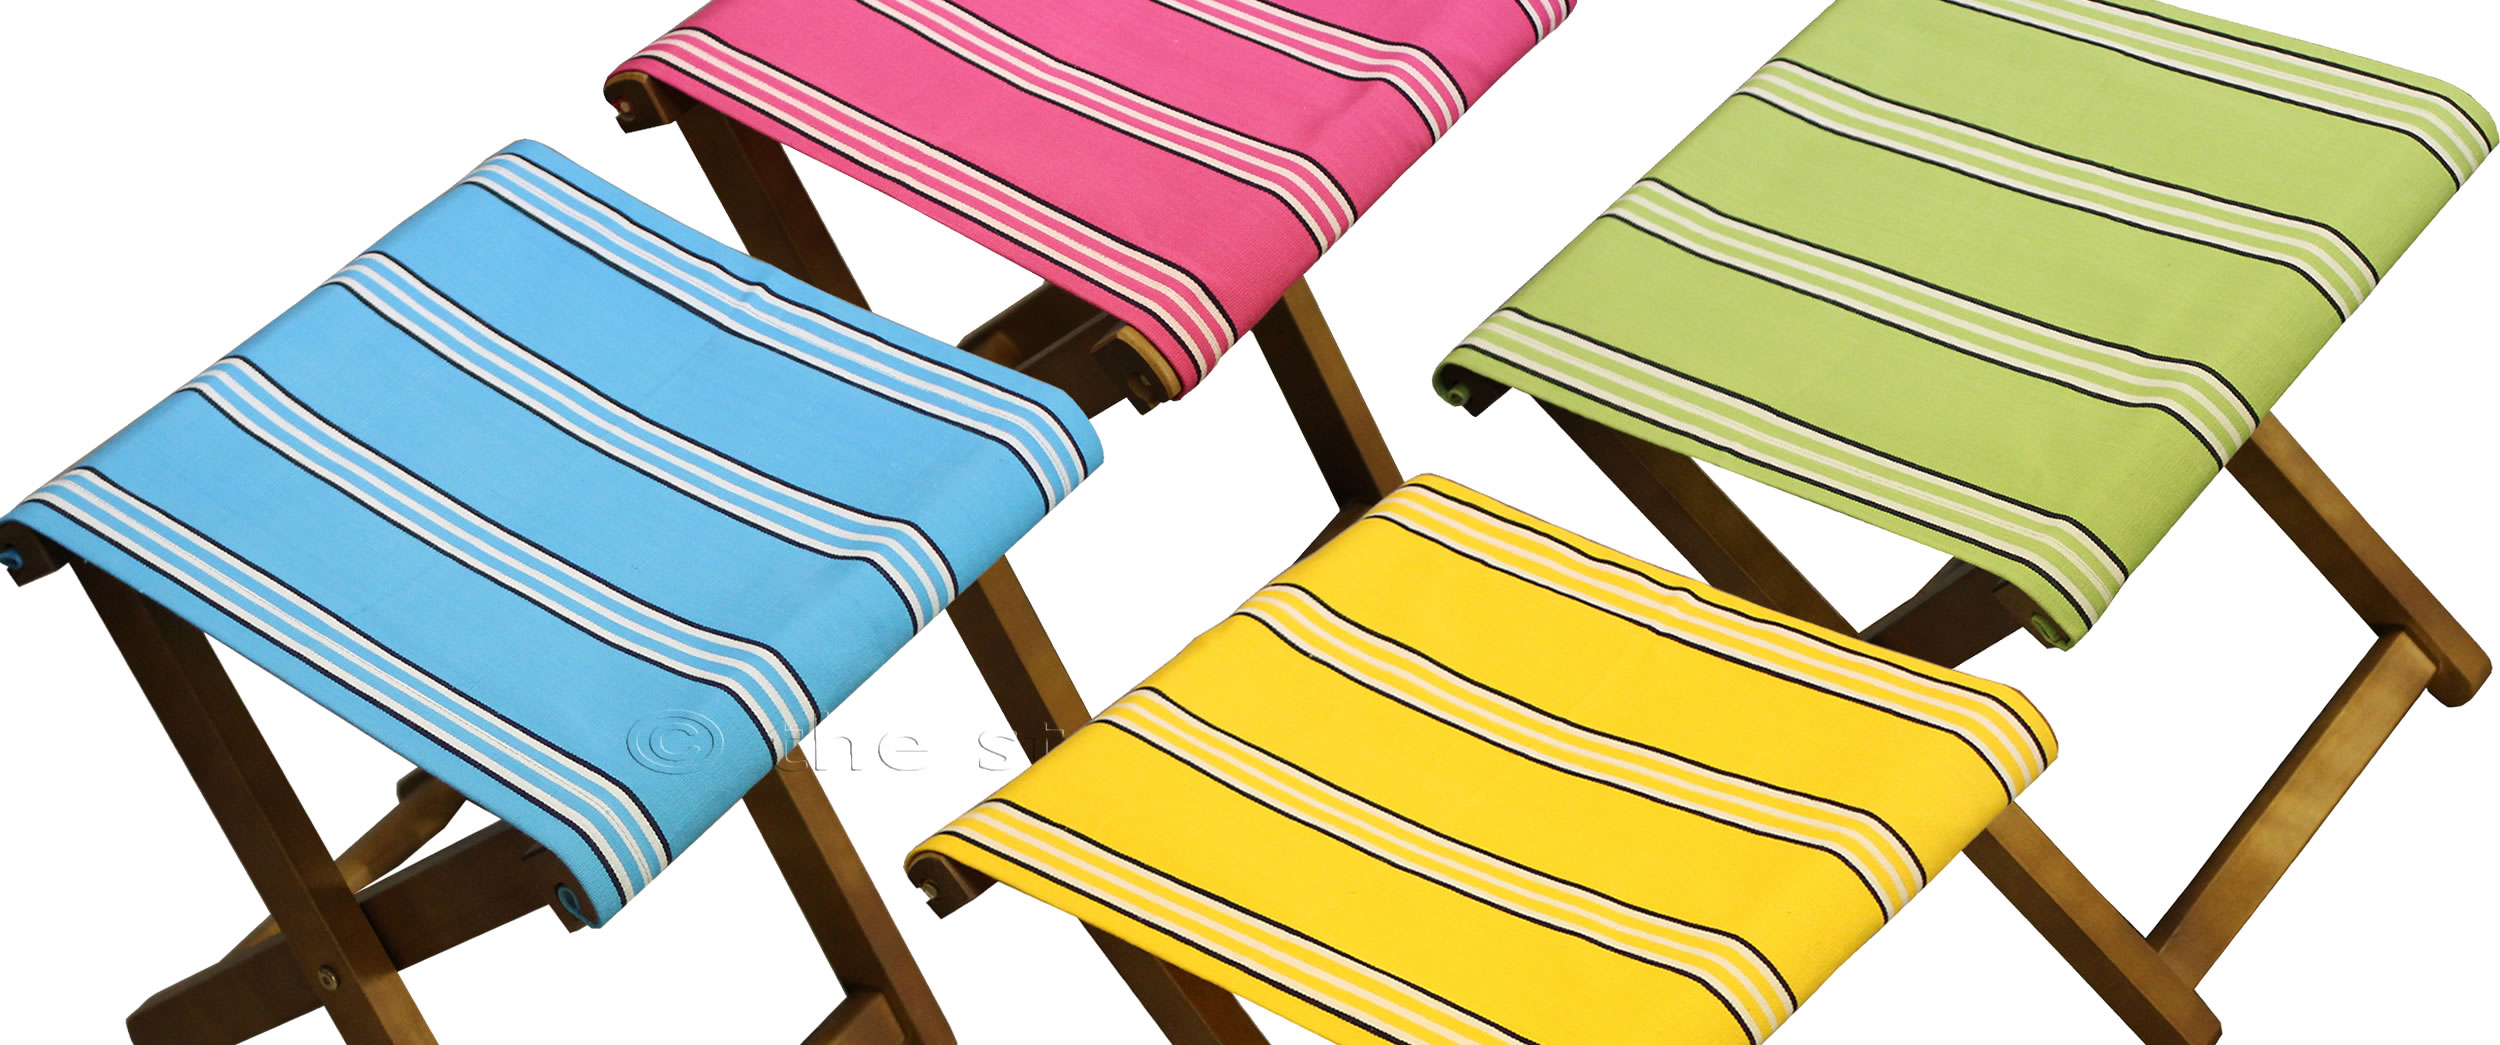 Admirable Portable Folding Stools With Striped Seats The Stripes Camellatalisay Diy Chair Ideas Camellatalisaycom